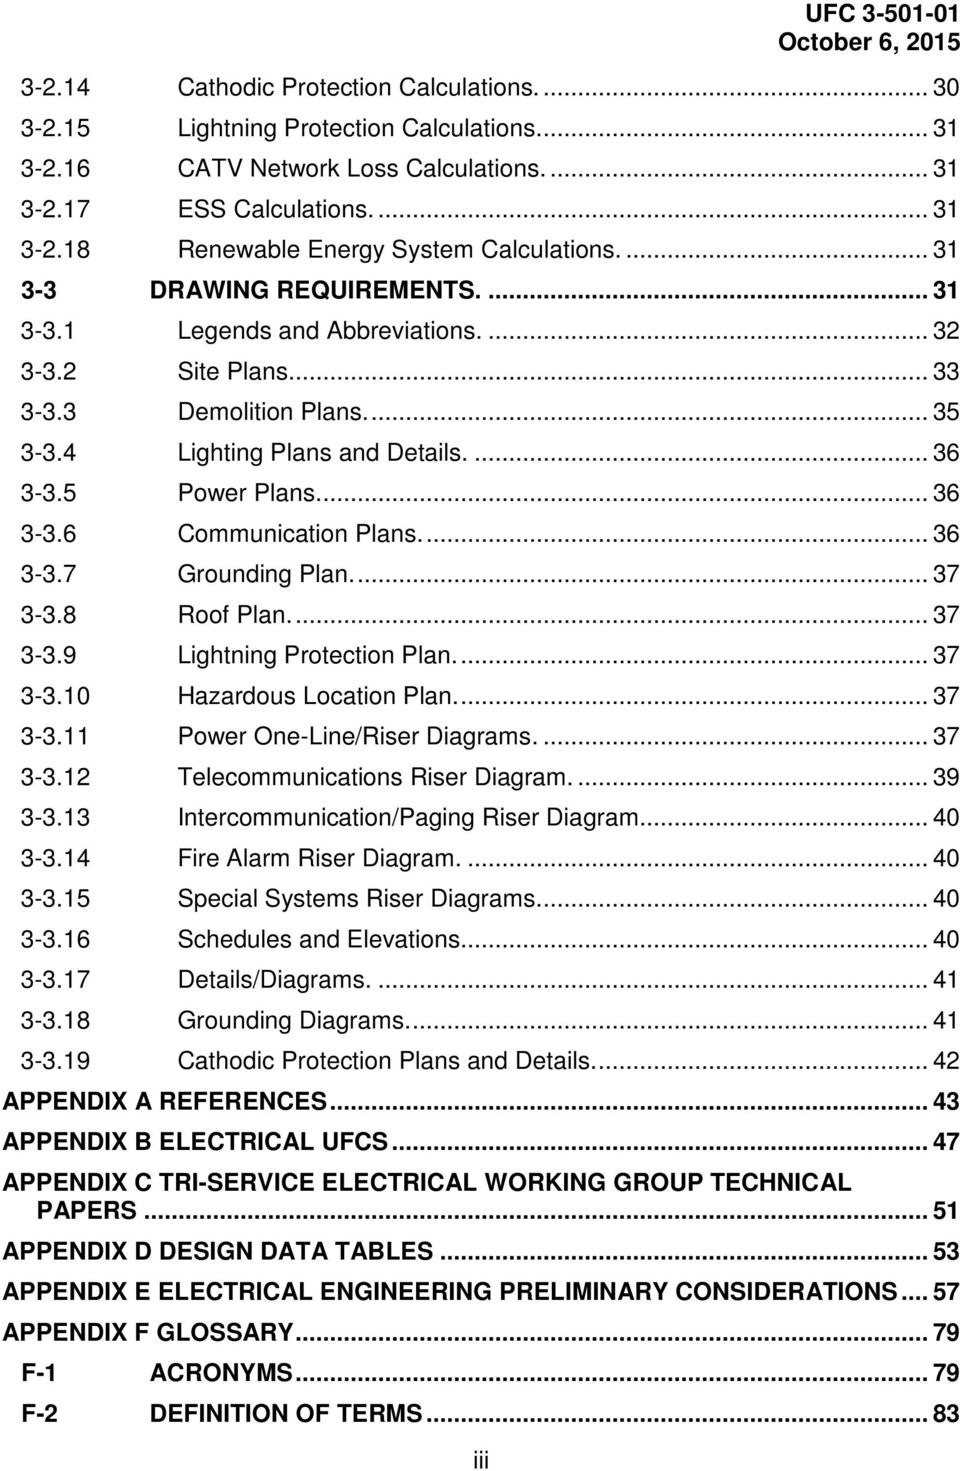 Unified Facilities Criteria Ufc Electrical Engineering Pdf One Line Riser Diagram Volts Design Software 36 3 37 Grounding Plan